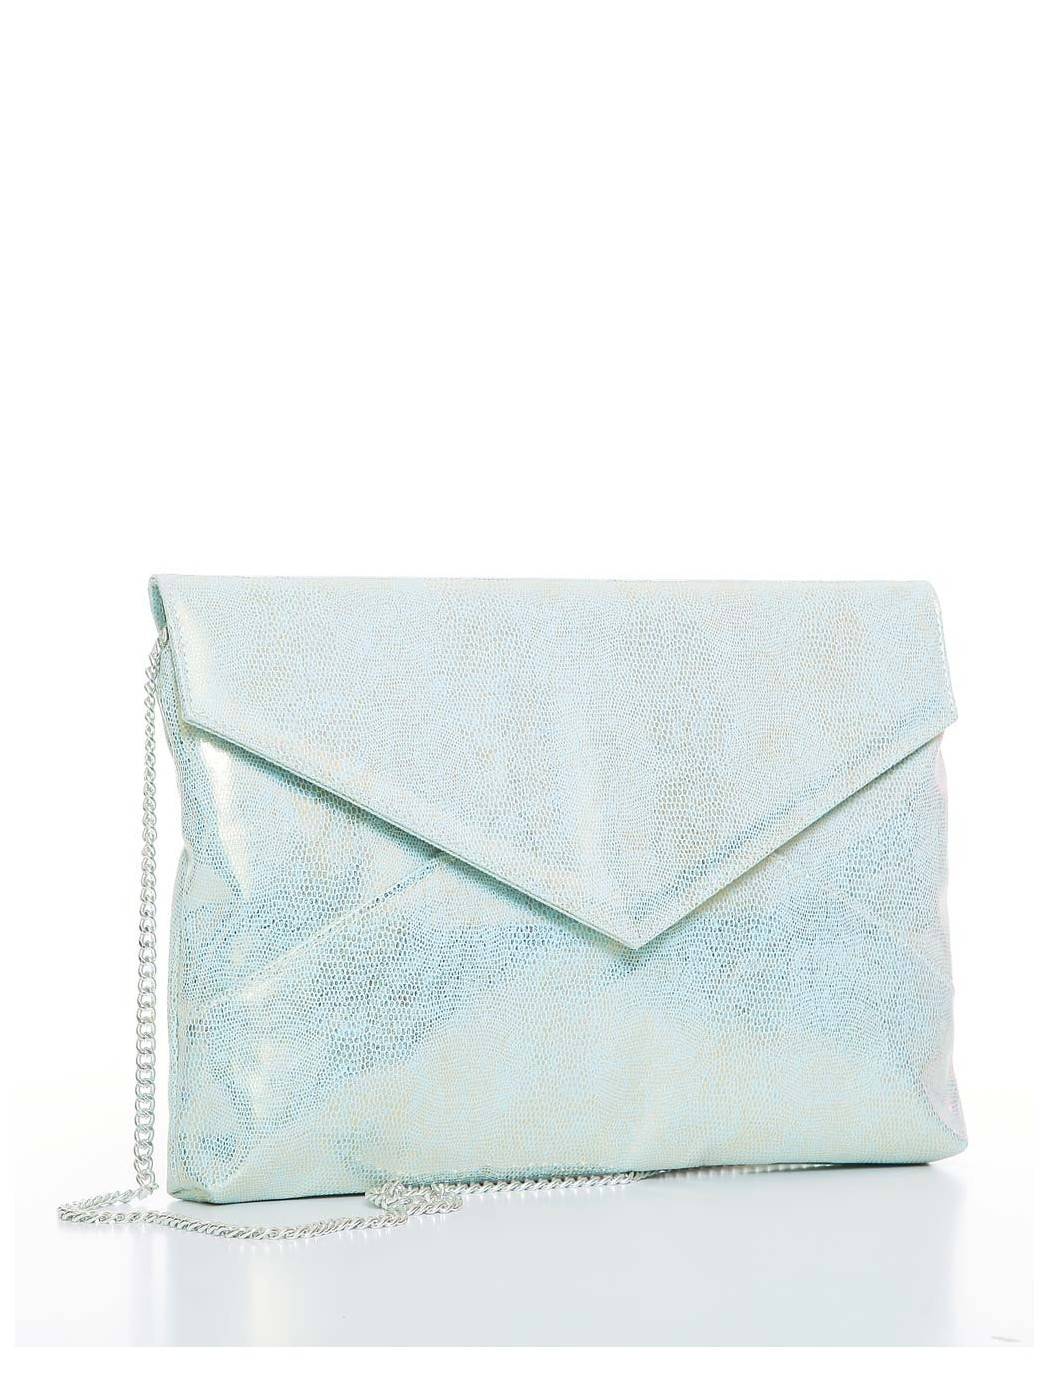 Shimmering clutch bag